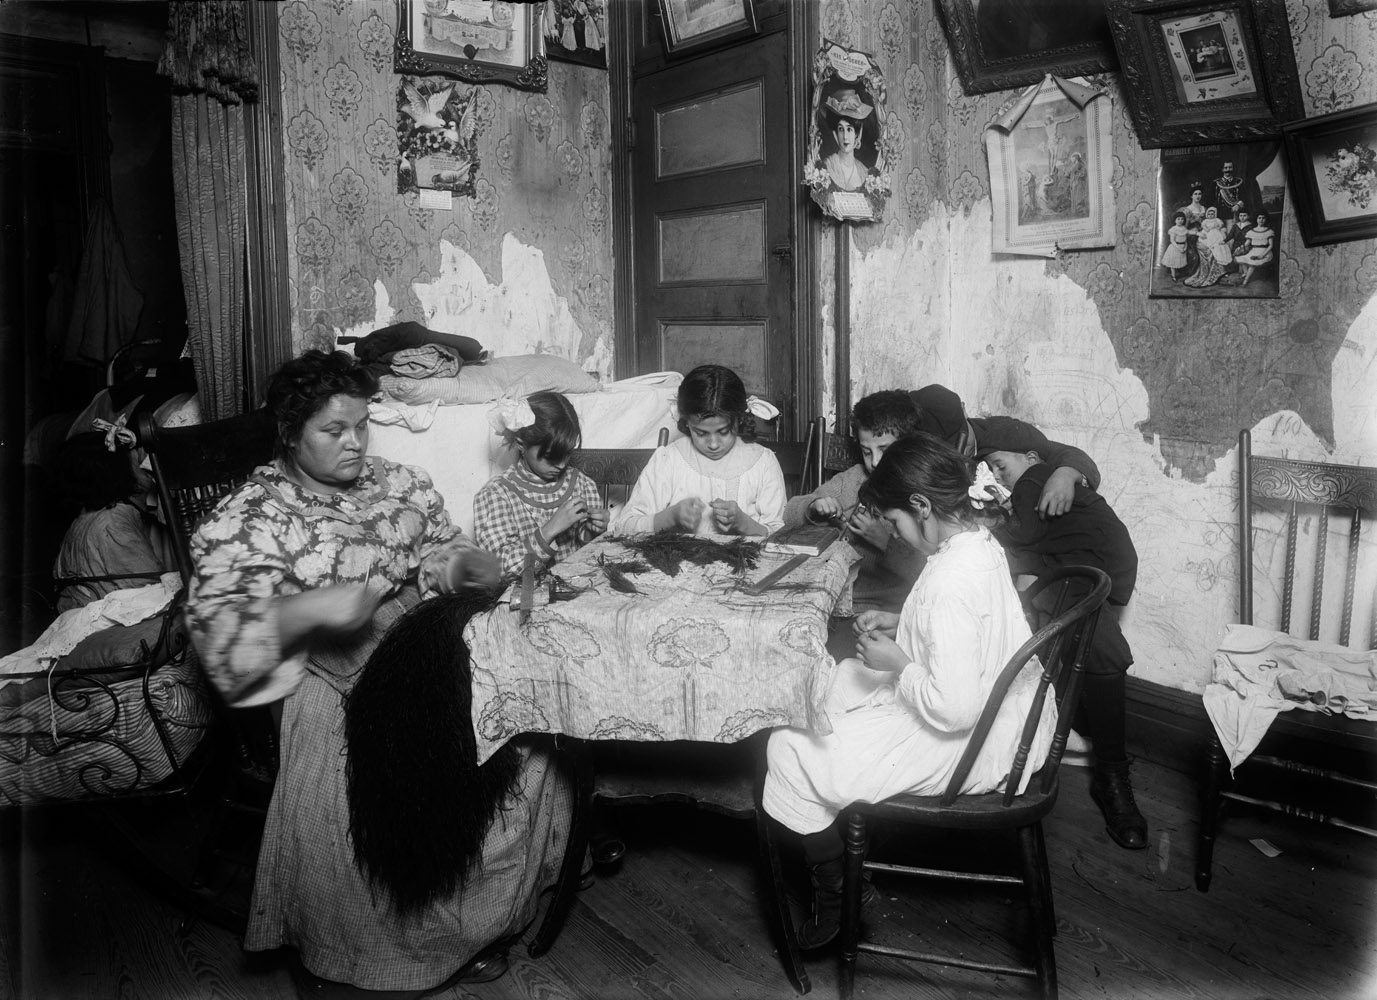 "Mary Mauro and family, working at home for a feather factory, New York City, 1911. 5 P.M. Mrs. Mary Mauro, 309 E. 110th St., 2nd floor. Family work on feathers. Make $2.25 a week. In vacation 2 or 3 times as much. Victoria, 8 yrs. Angelina 10 yrs. (a neighbor). Frorandi 10 yrs. Maggie 11 yrs. All work except two boys against wall. Father is street cleaner and has steady job. Girls work until 7 or 8 P.M. Once Maggie (11 yrs.) worked until 10 P.M.  —Hine's original captionThe photograph is exhibited at the Ellis Island Immigration Museum. ""I went to Ellis Island and found this picture of my father's family. When I saw the photo, it gave me an opportunity to step back in time, and to actually enter the room where they were. I have always felt an appreciation for what I have. Our family has achieved so much since the picture was taken. I feel very proud."" —Daughter of one of the boys in the photograph"